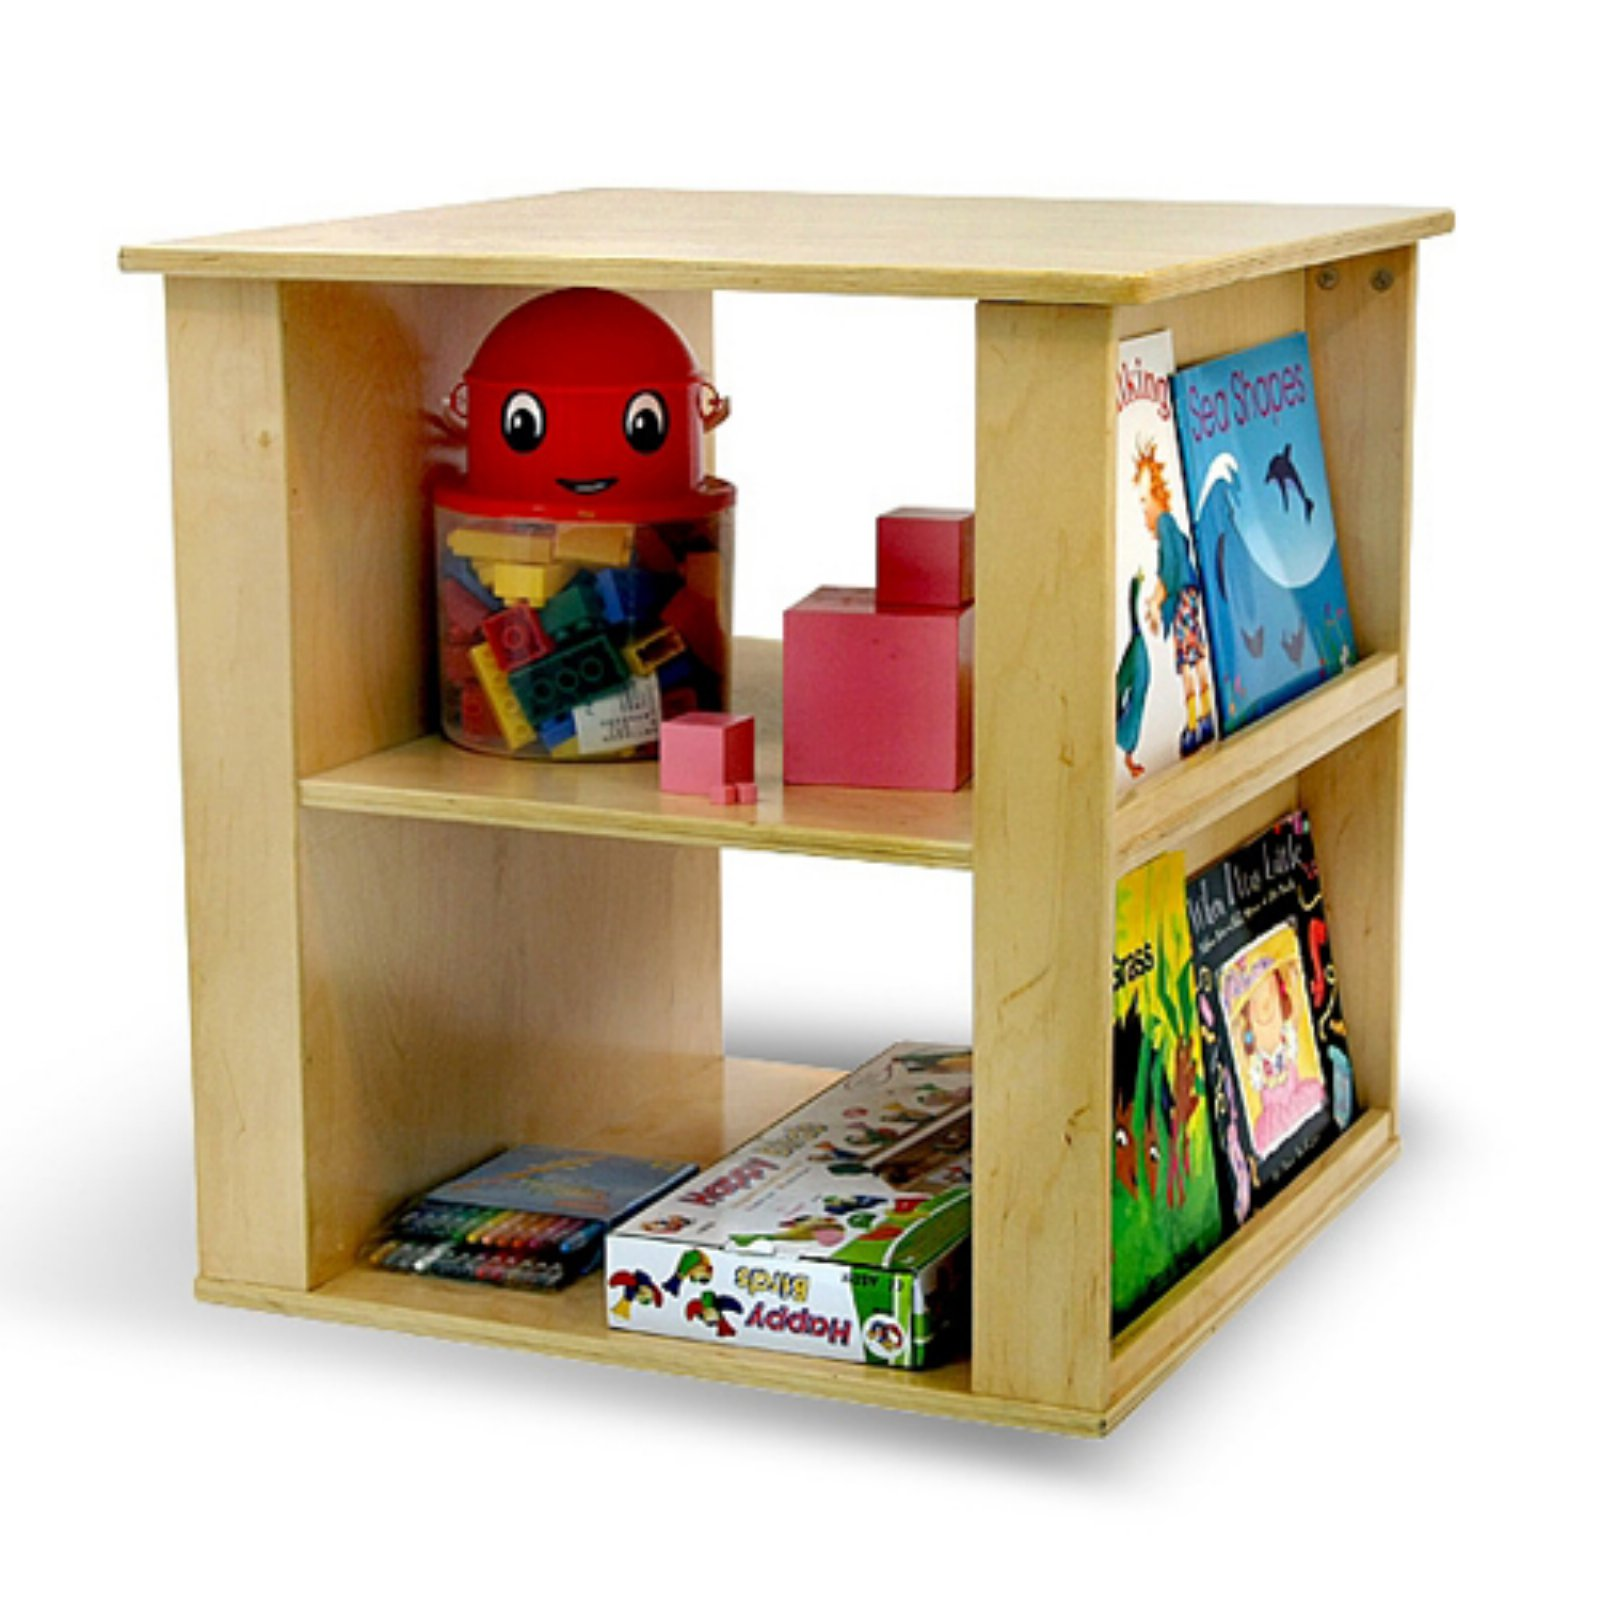 A+ Childsupply Toy and Book Cube Shelf